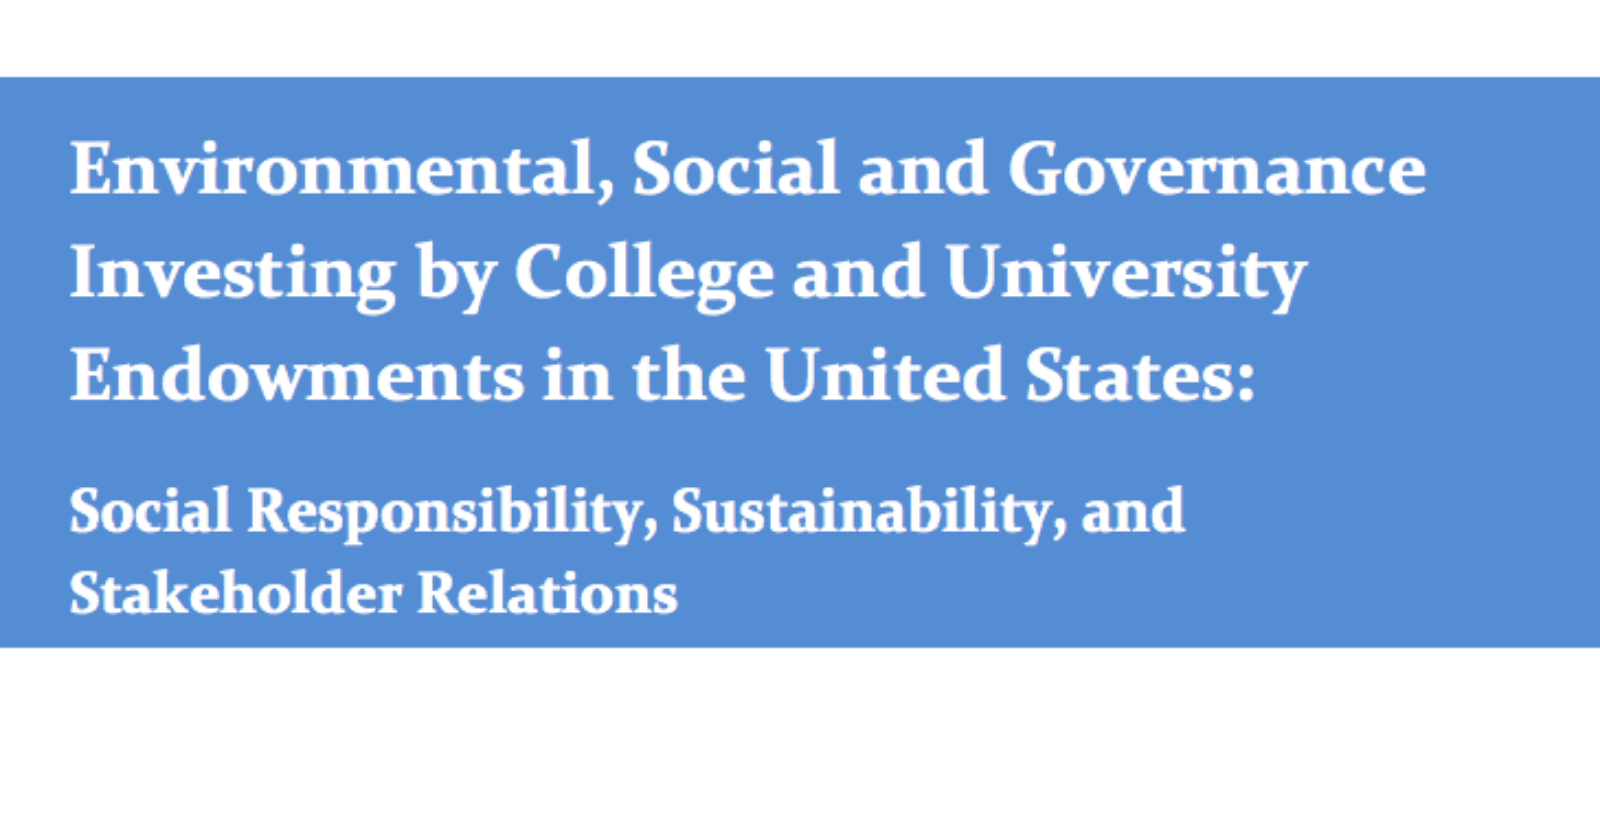 Environmental, Social and Governance Investing by College and University Endowments in the United States